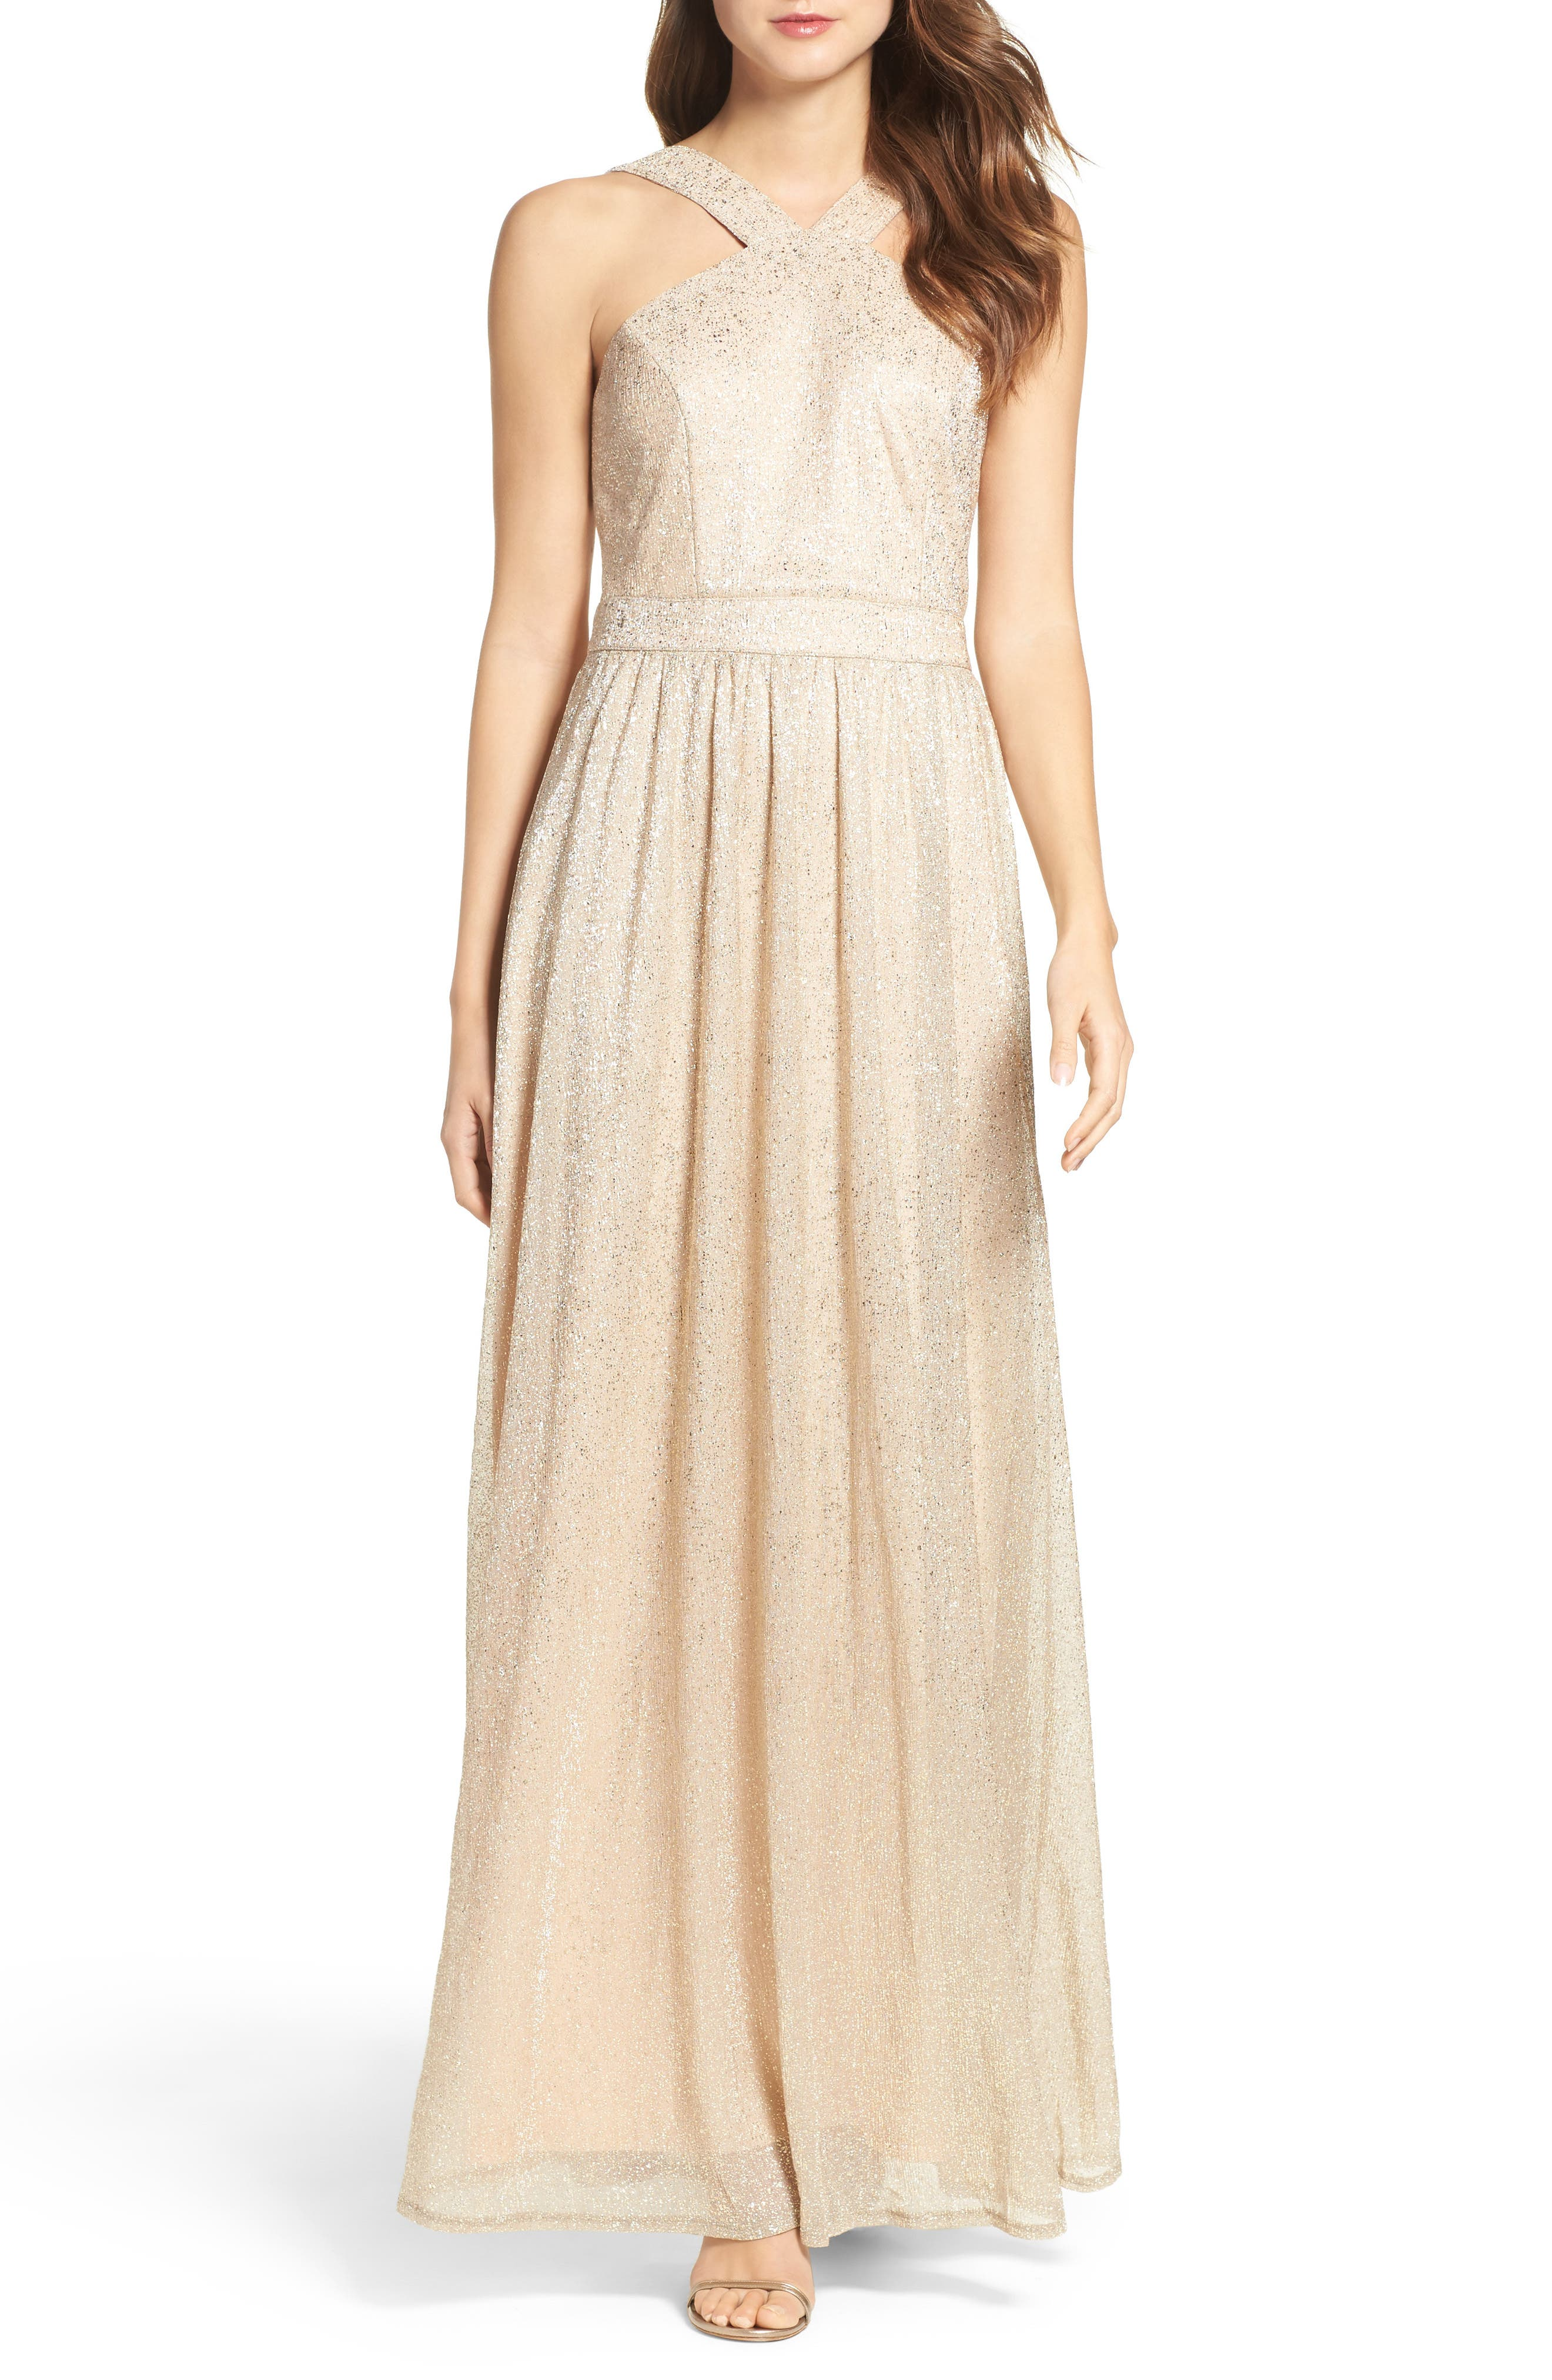 Alternate Image 1 Selected - Lulus High Neck Shimmer Gown